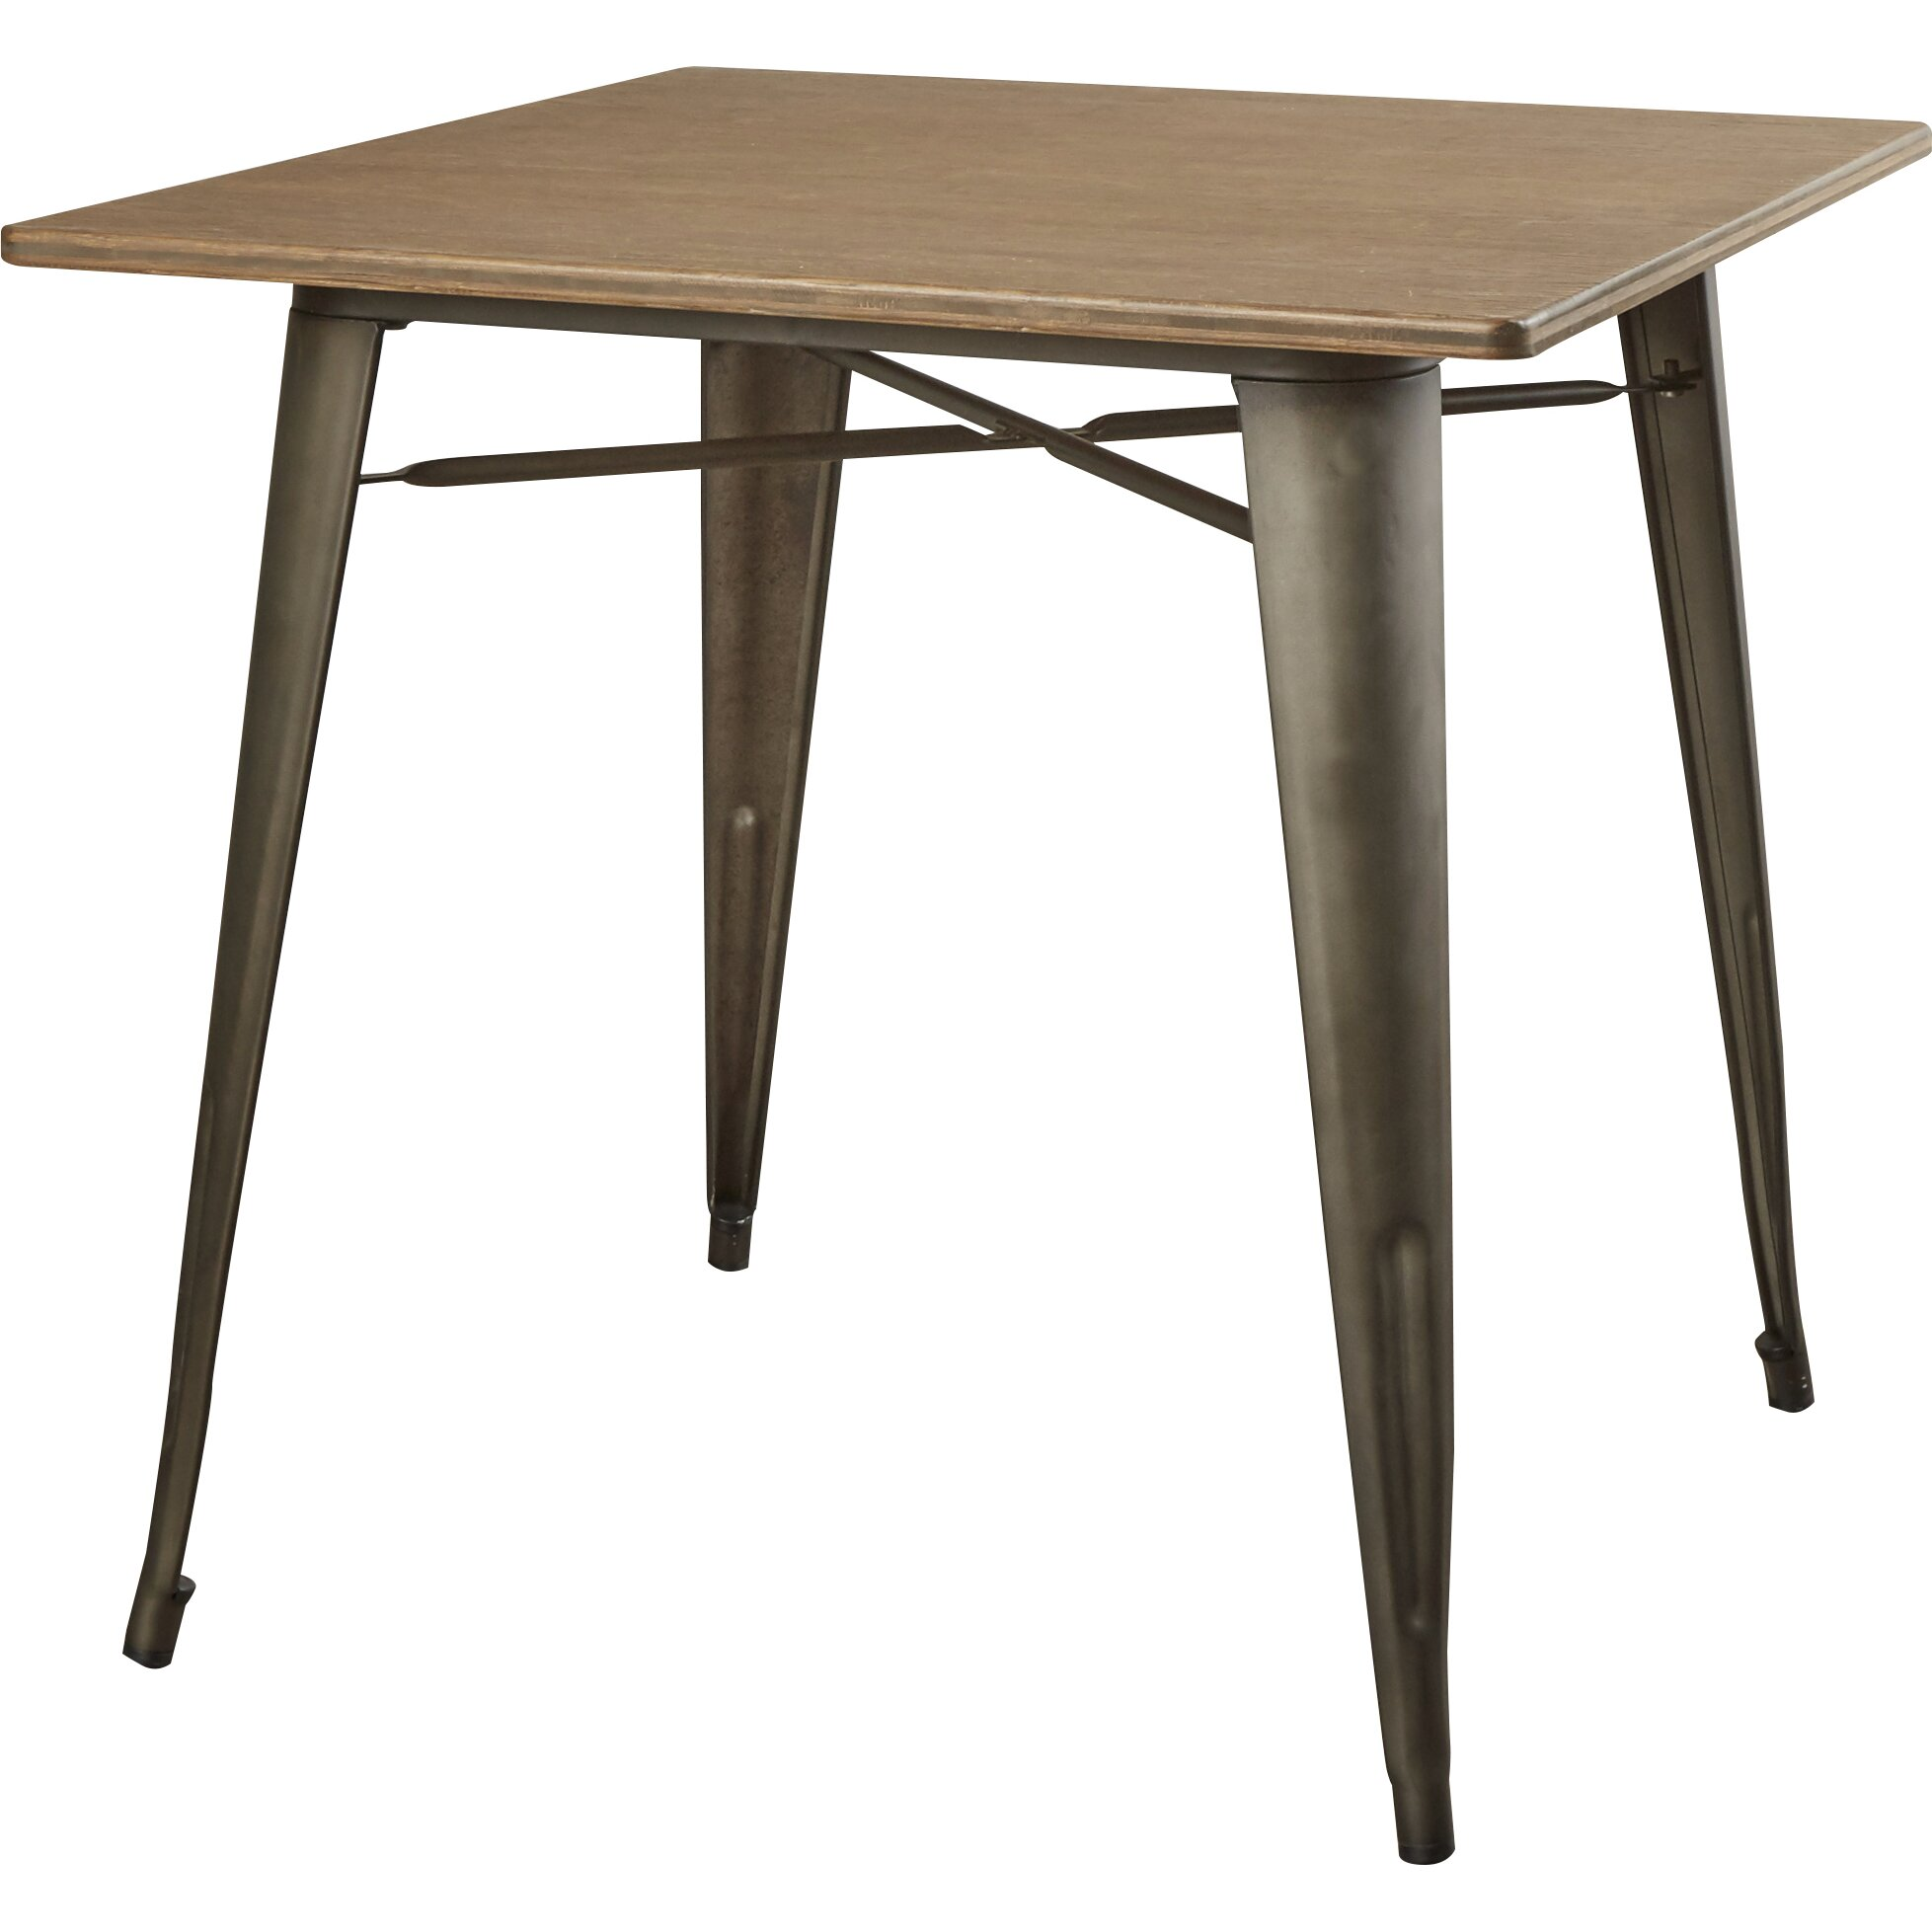 Trent Austin Design Chico Dining Table Reviews Wayfair